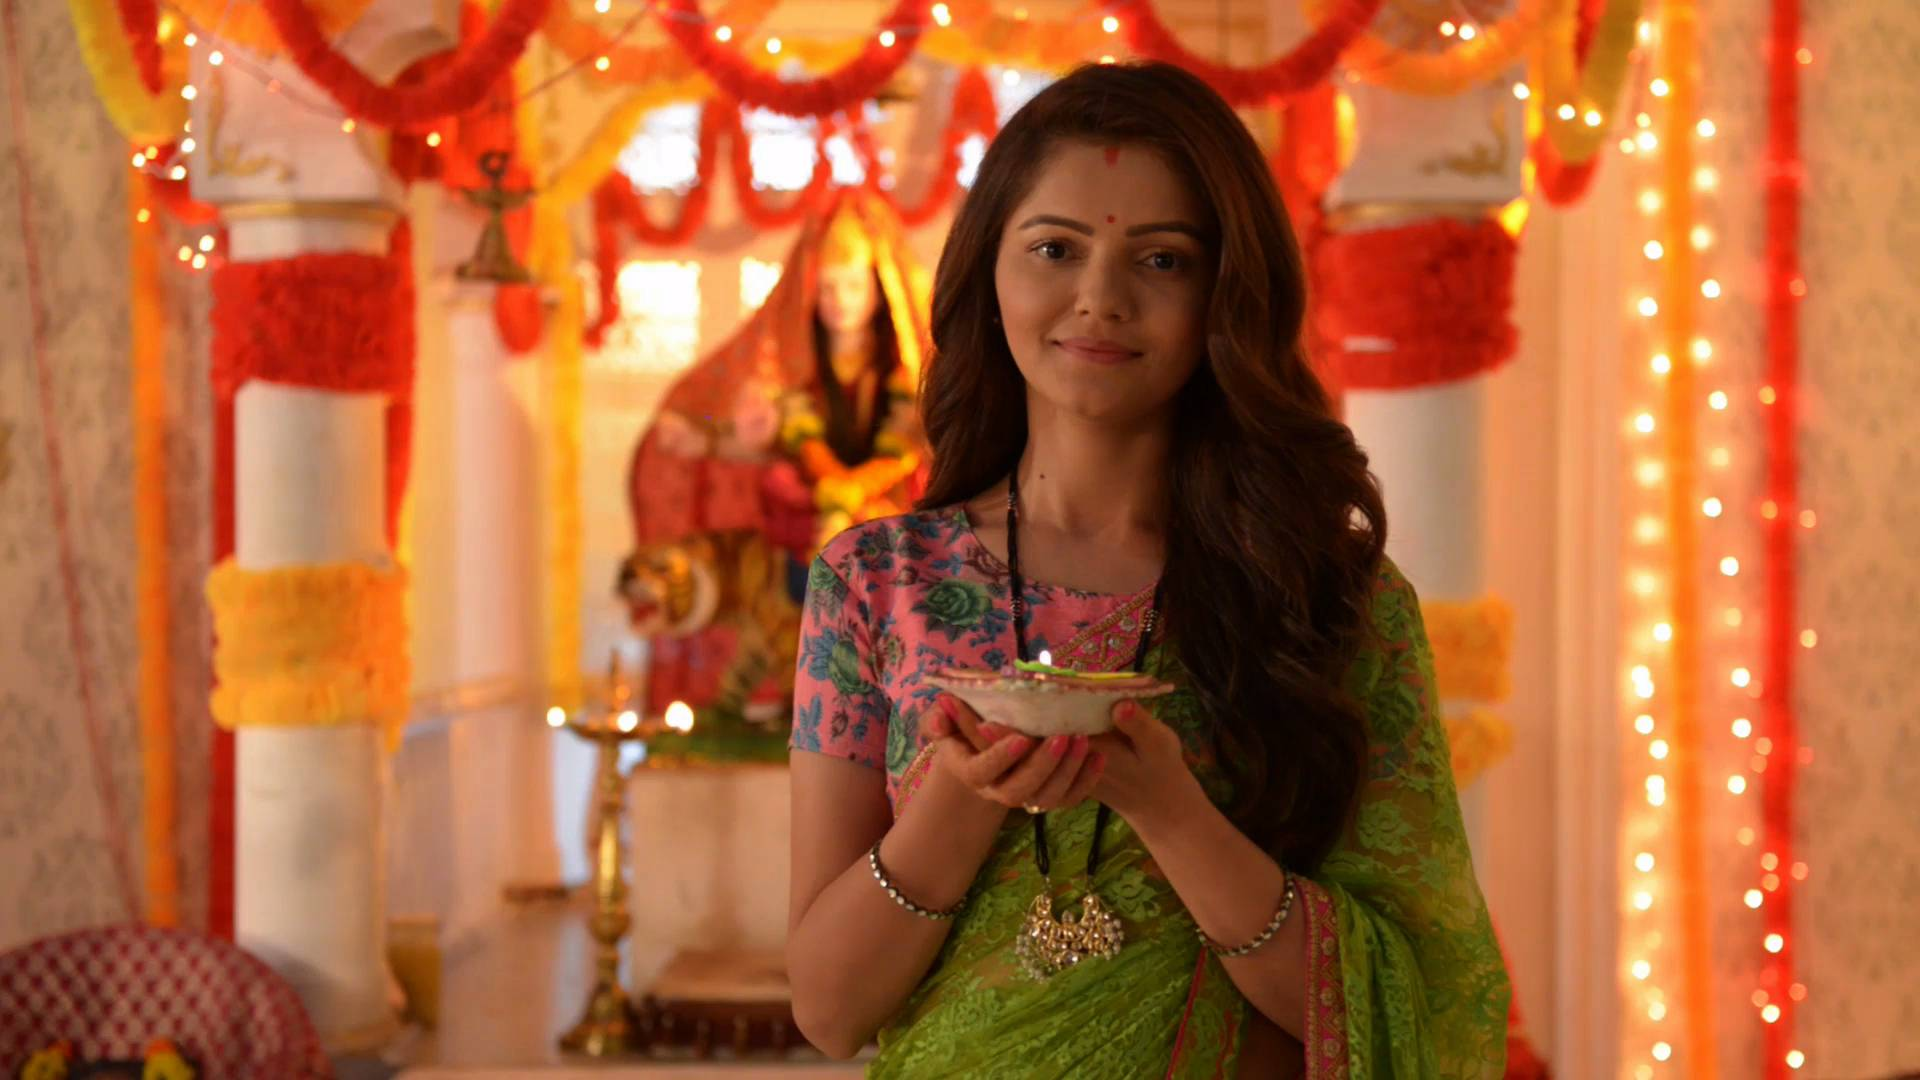 Saumya from 'Shakti' earnestly urges everyone not use crackers on Diwali but enjoy the festivity with sweets and lights!